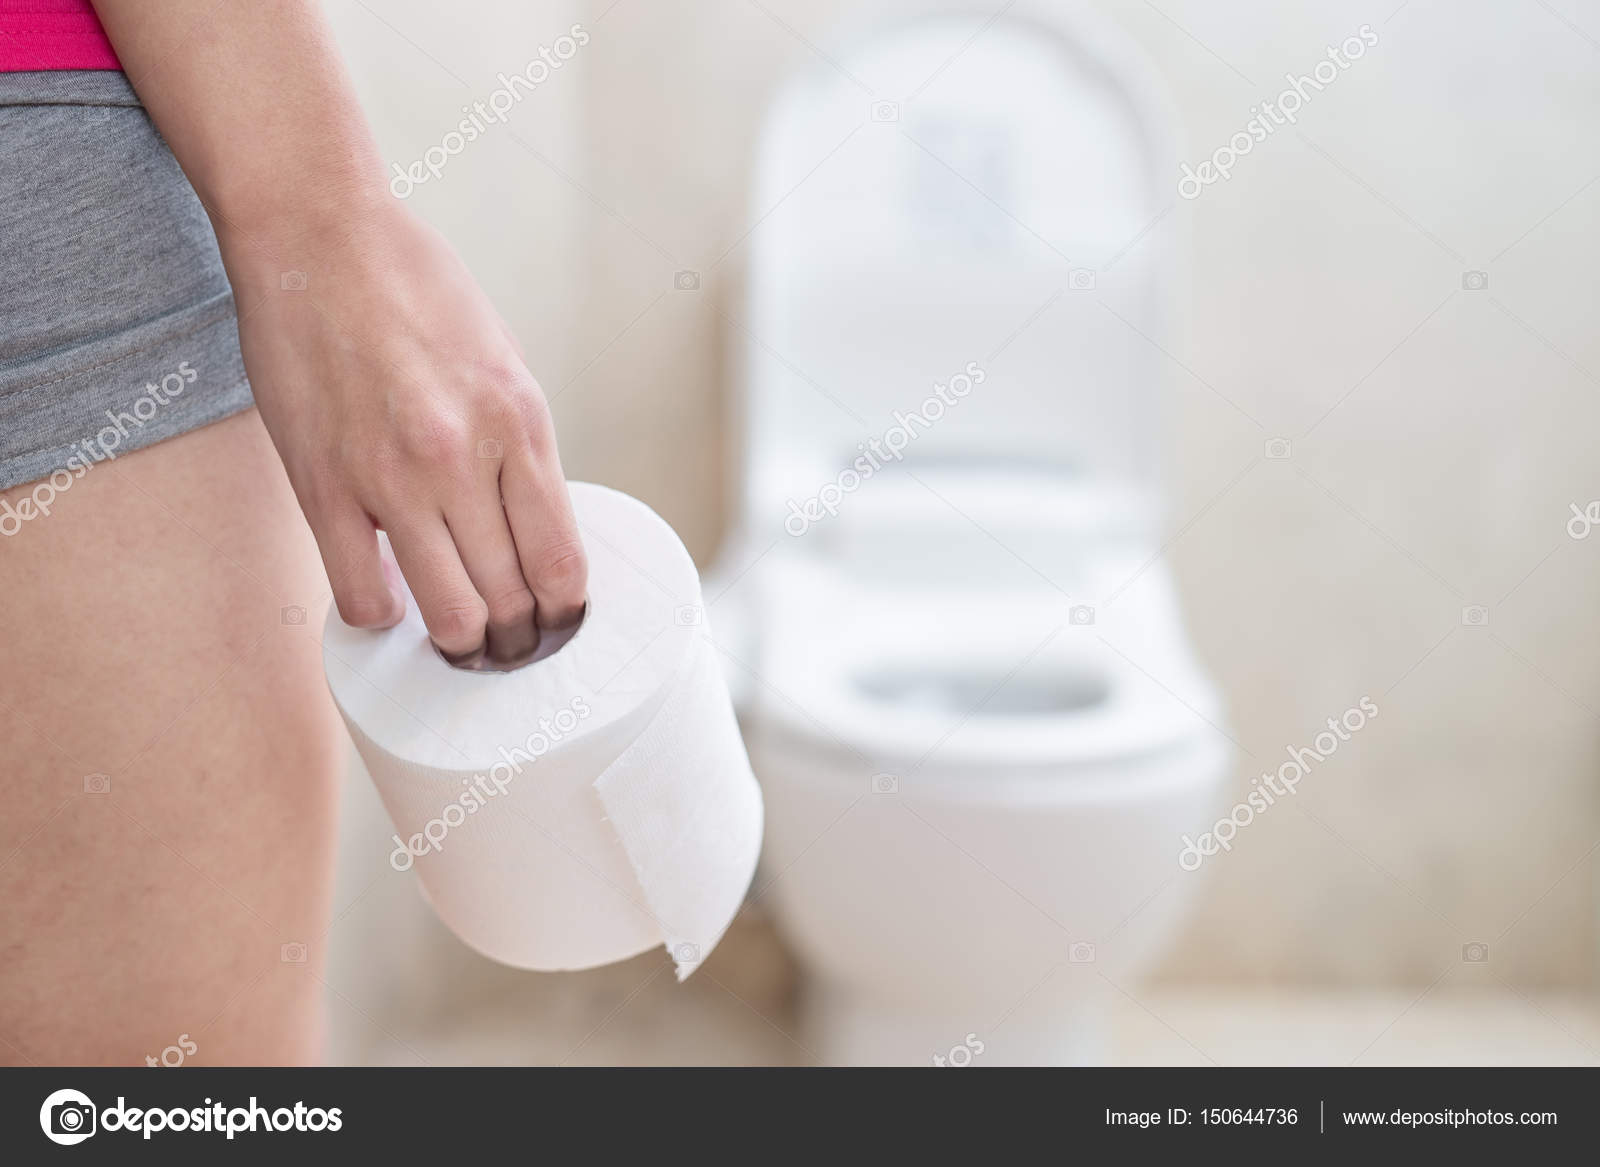 Woman Holding Toilet Paper Stock Photo